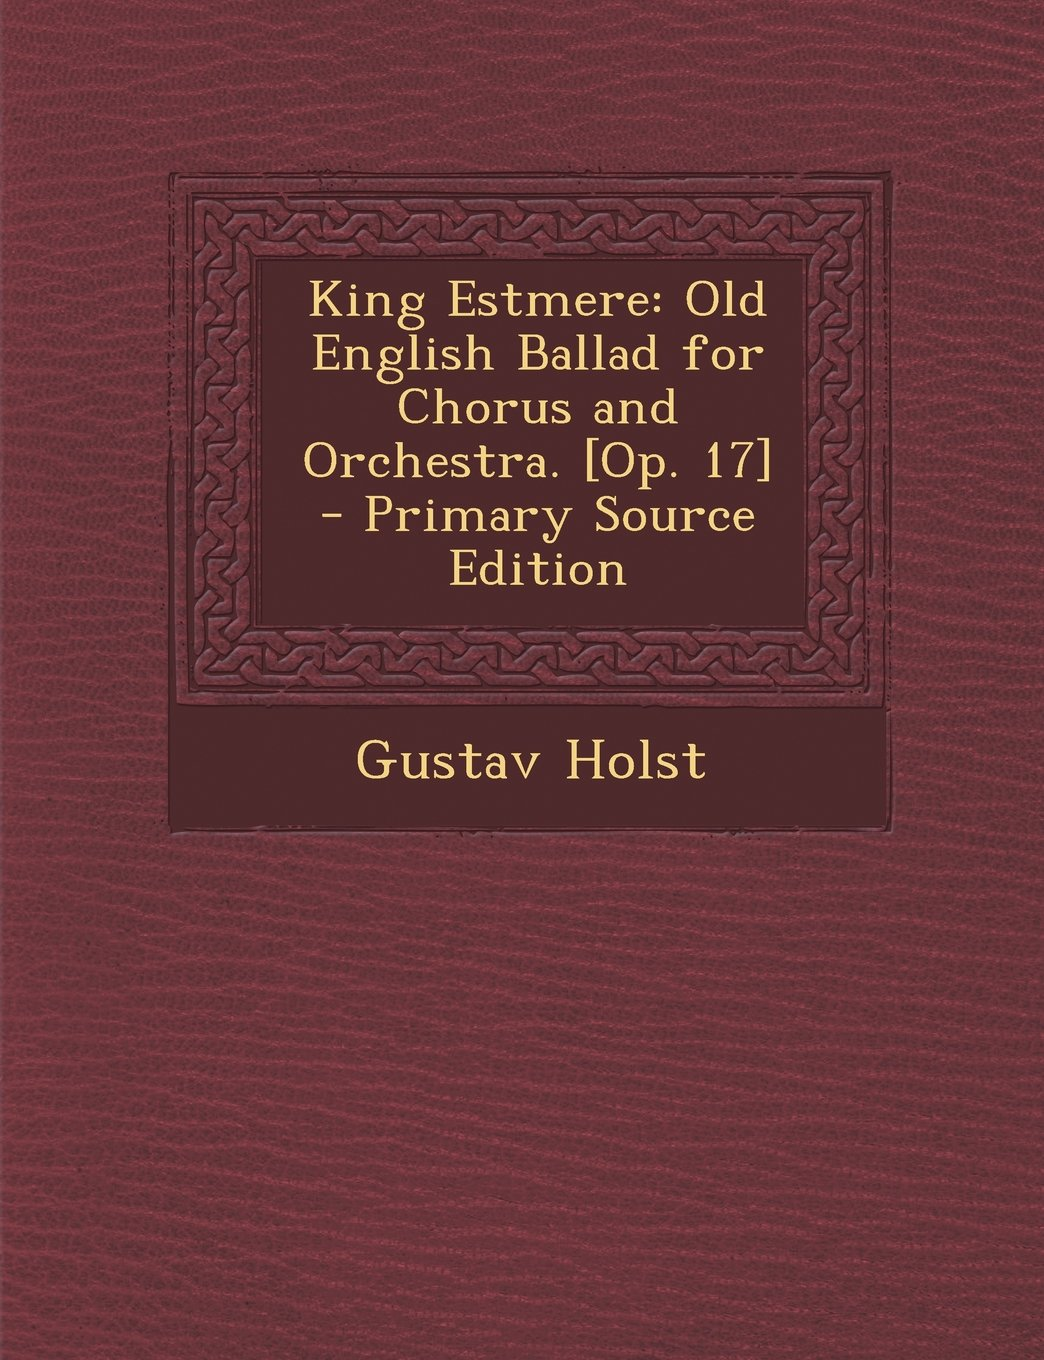 Download King Estmere: Old English Ballad for Chorus and Orchestra. [Op. 17] - Primary Source Edition ebook